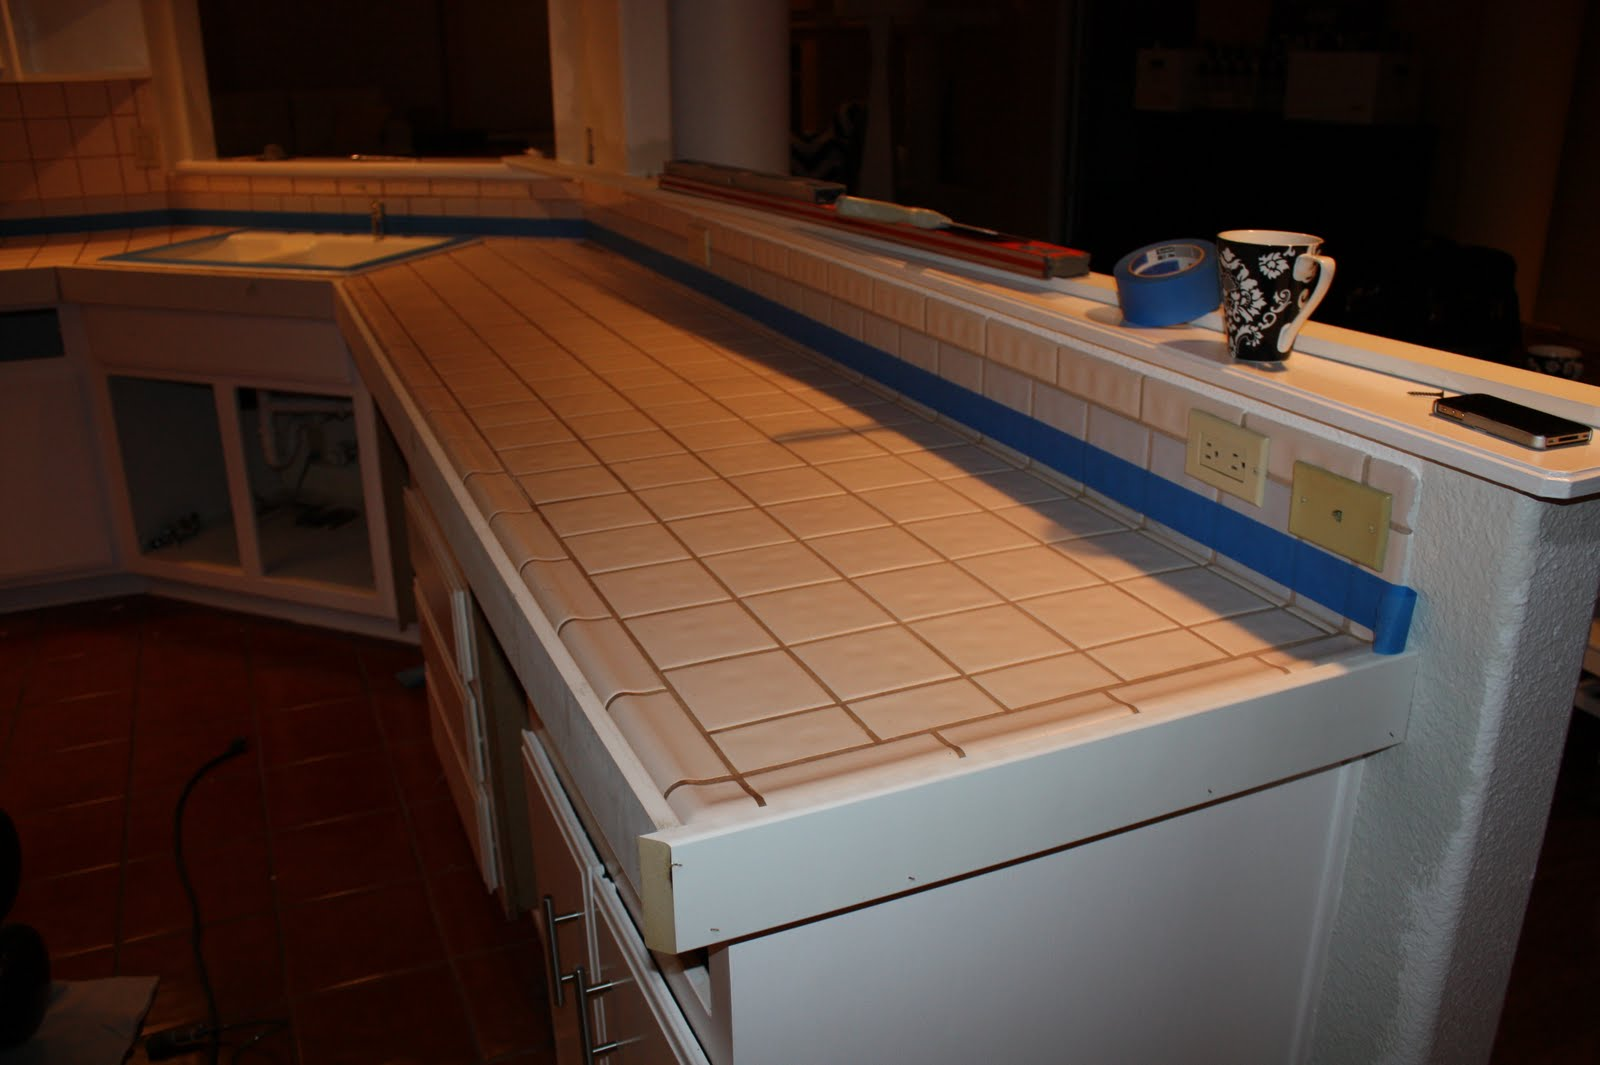 Tile Countertop Kitchen Remodelaholic Quick Install Of Concrete Countertops Kitchen